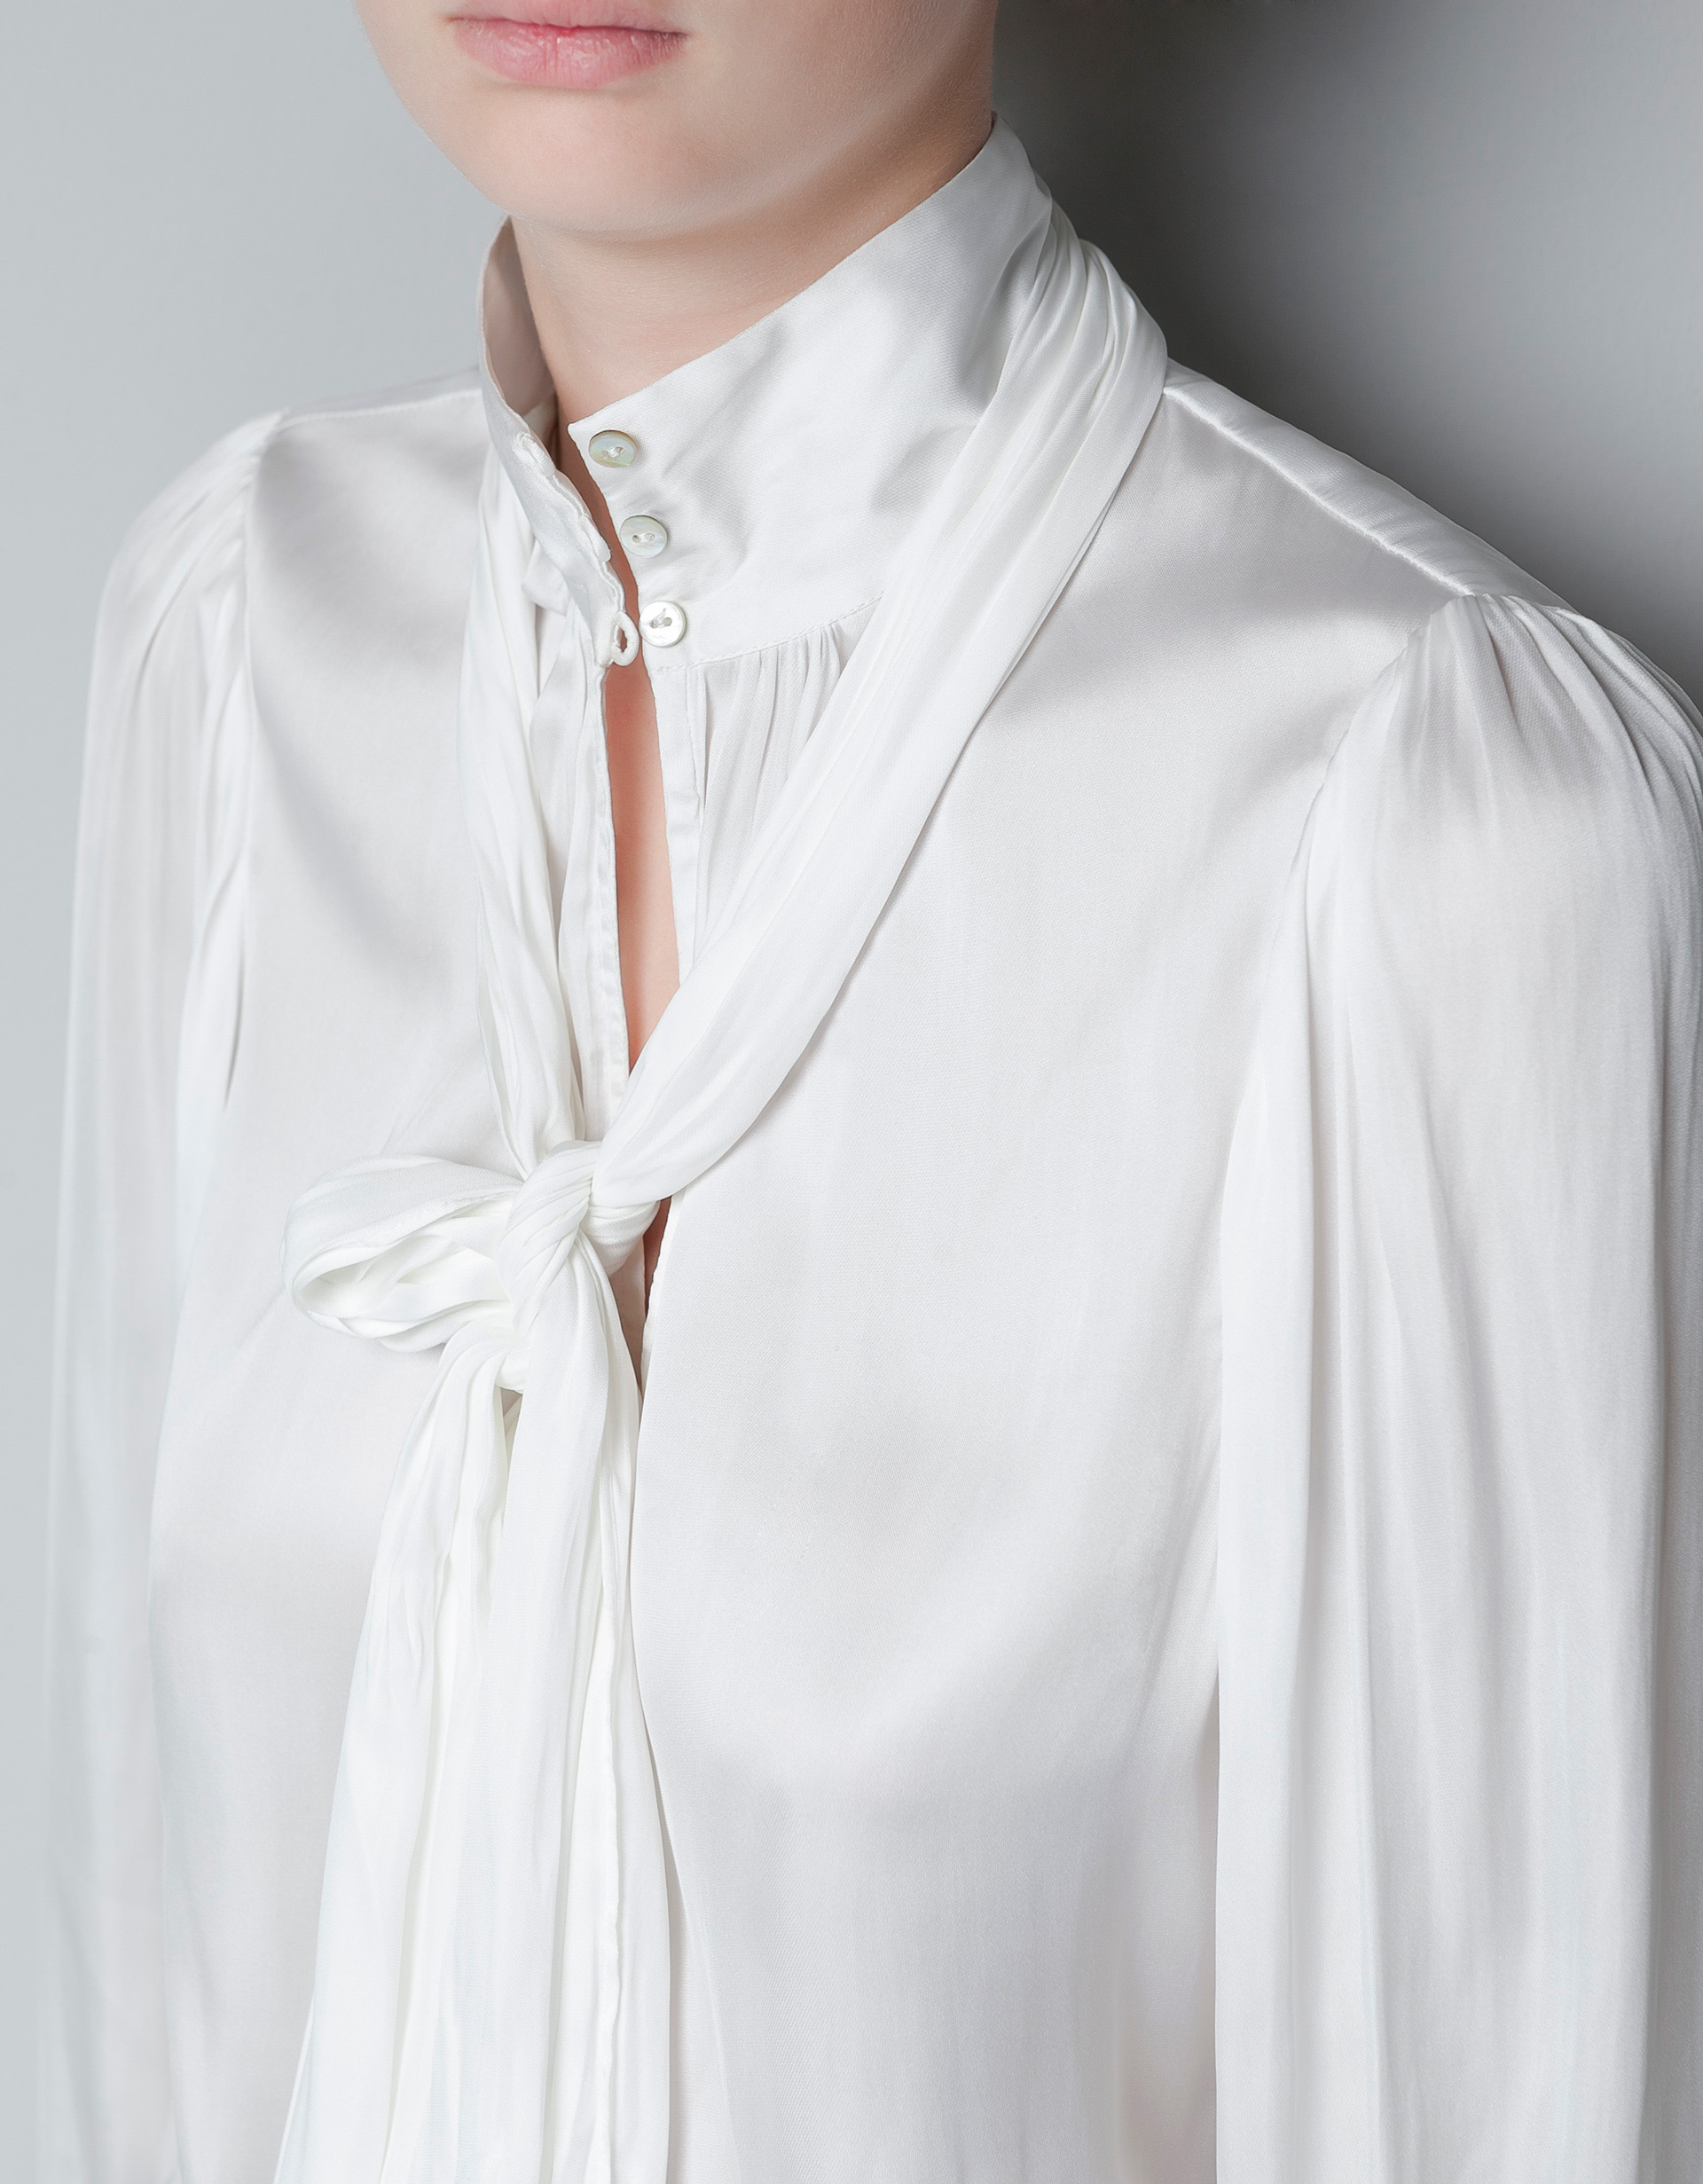 Wing Collar Shirts For Men